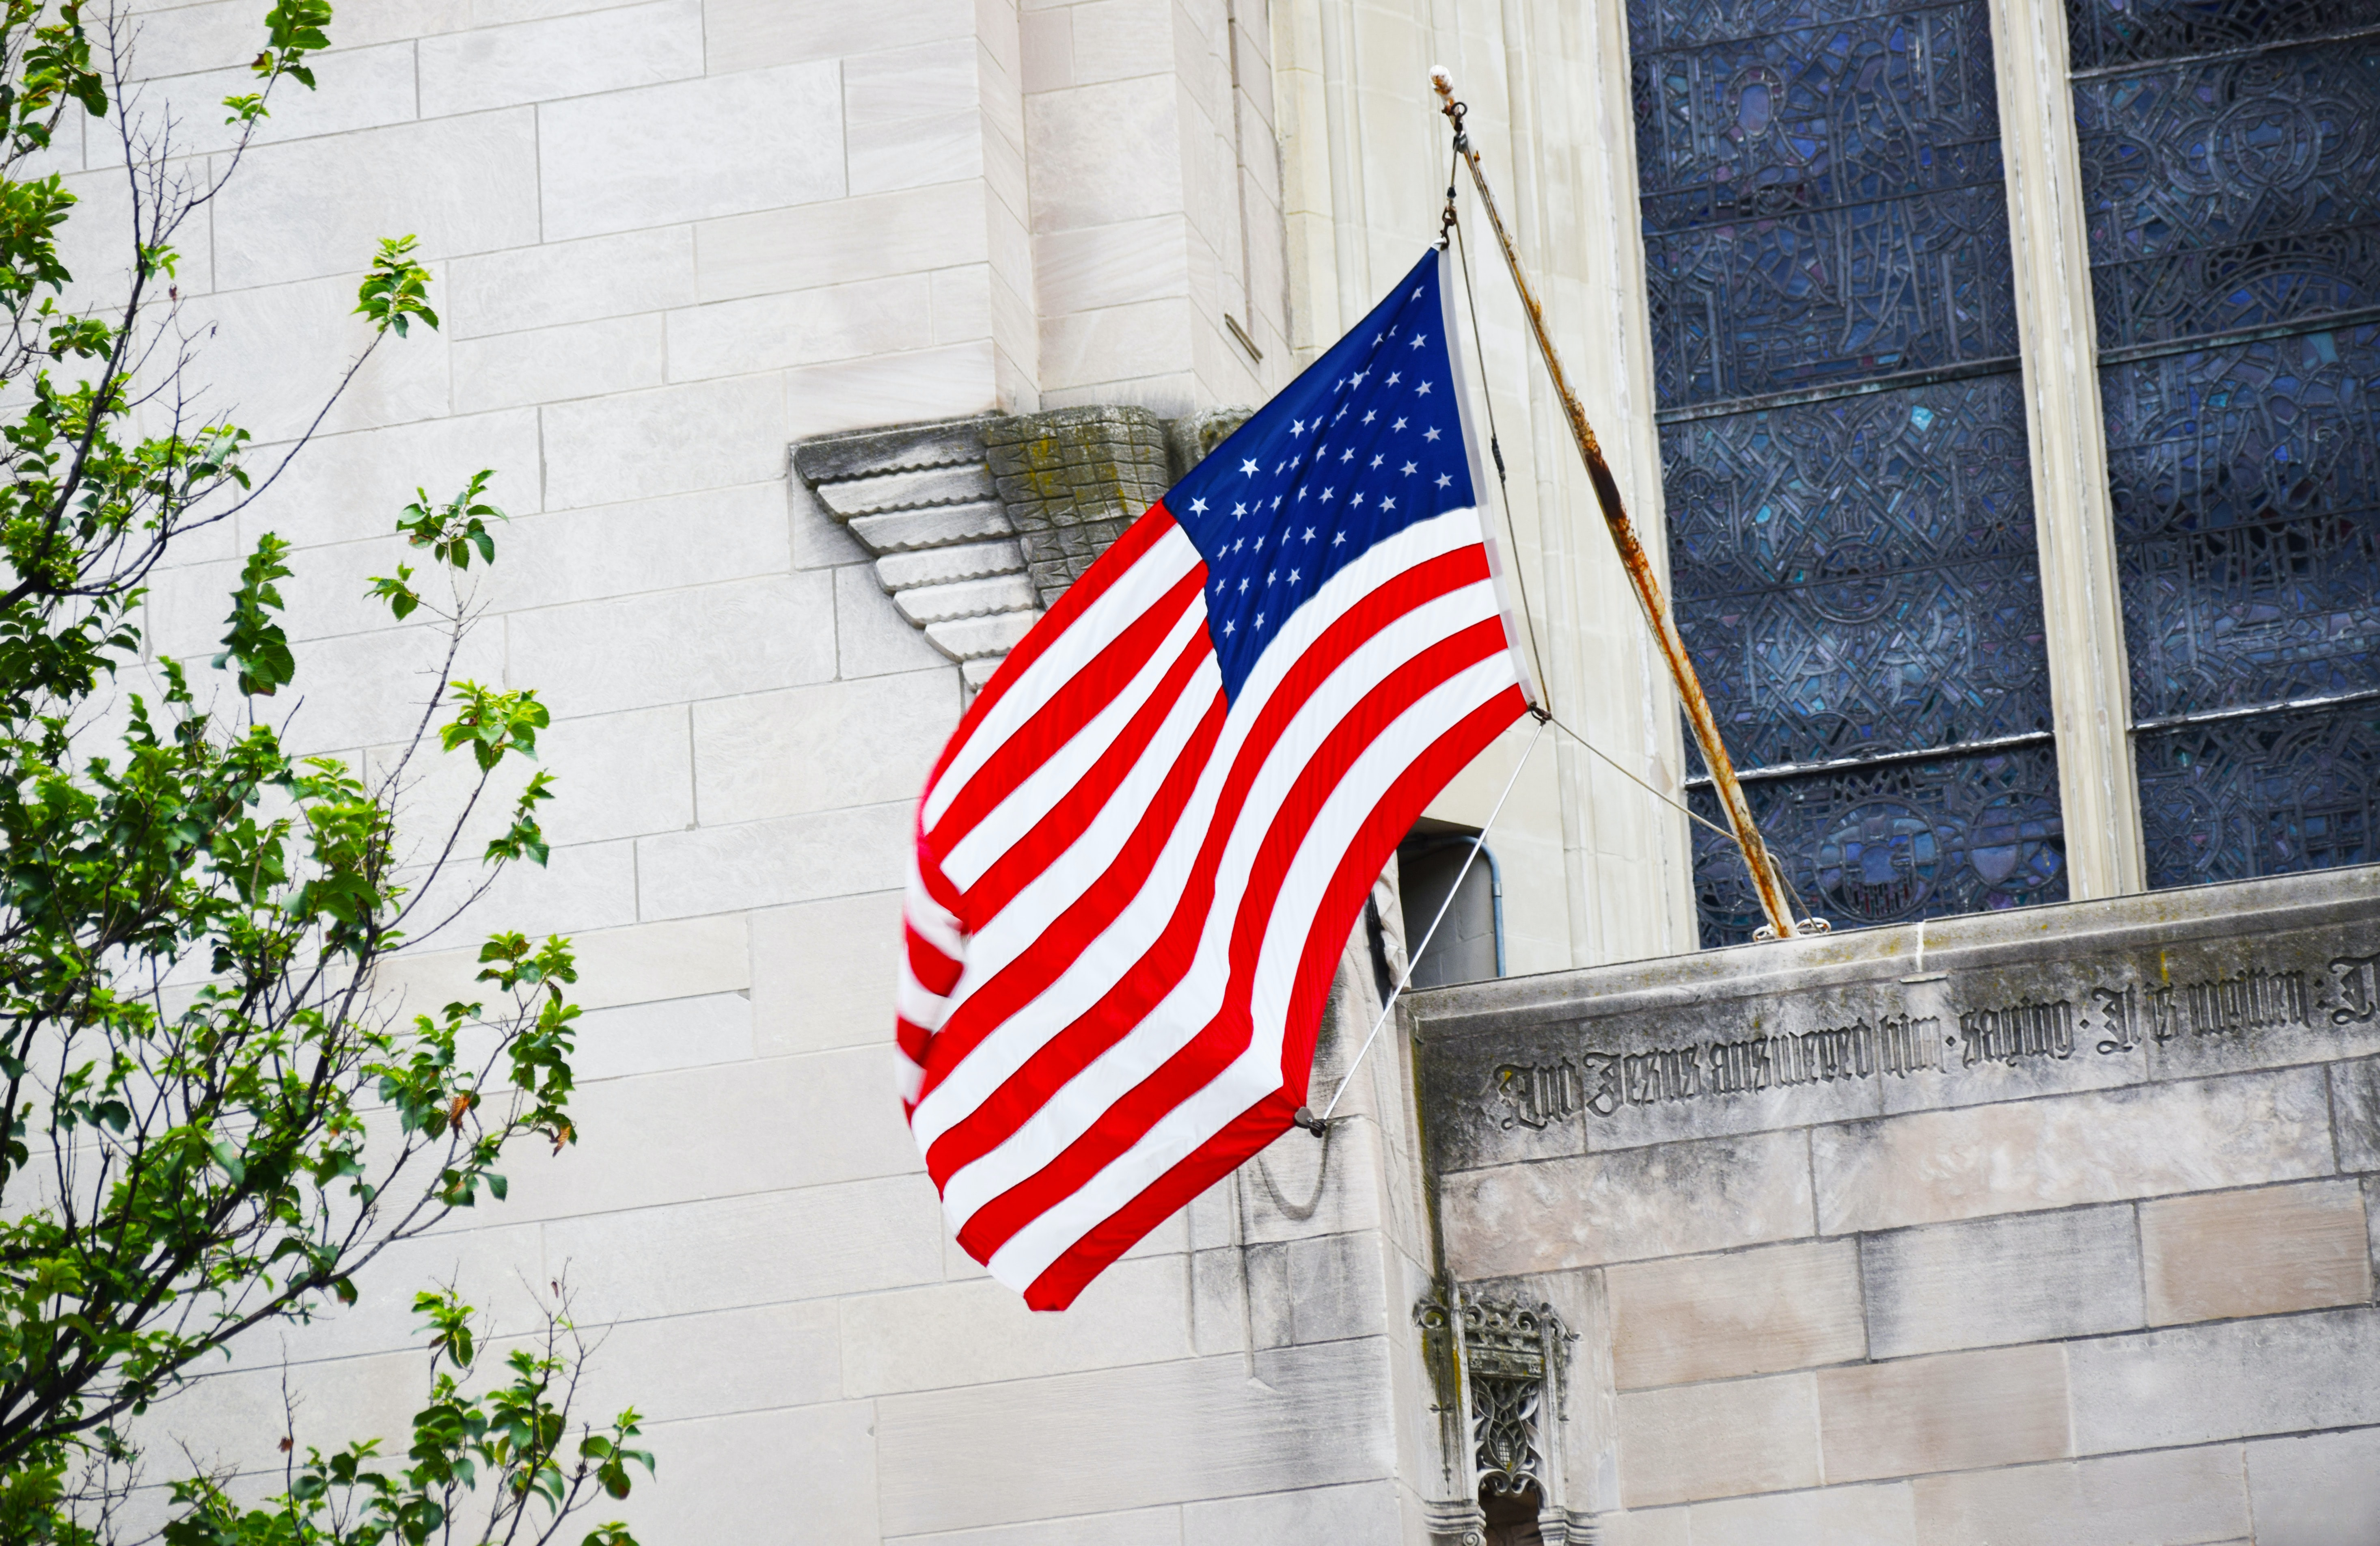 flag of USA mounted on building